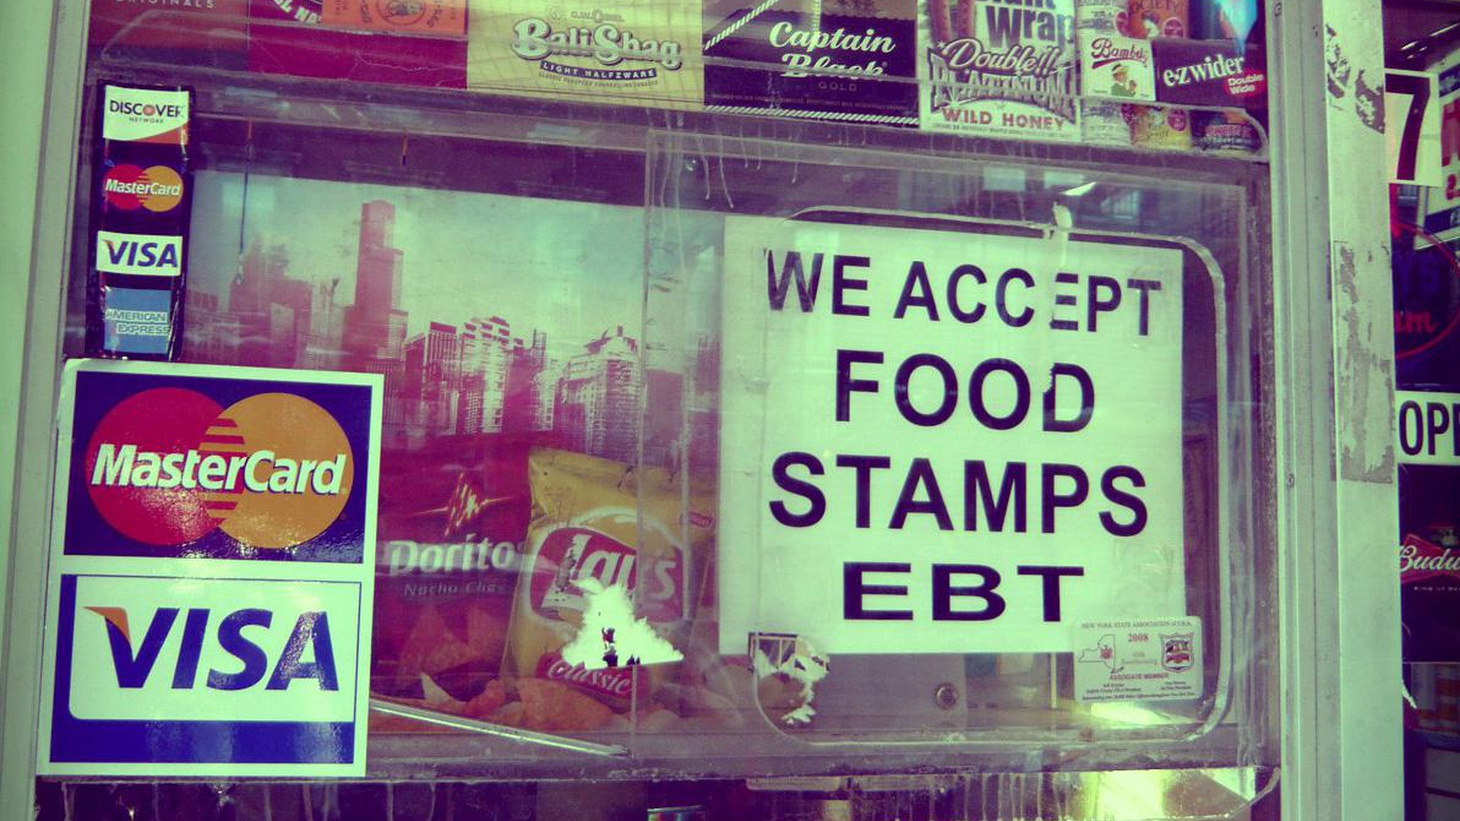 Democrats say a massive increase in food stamps is helping millions to stay out of poverty in economic hard times. Republicans say food-stamp spending is out of control, and they're calling for major reductions.